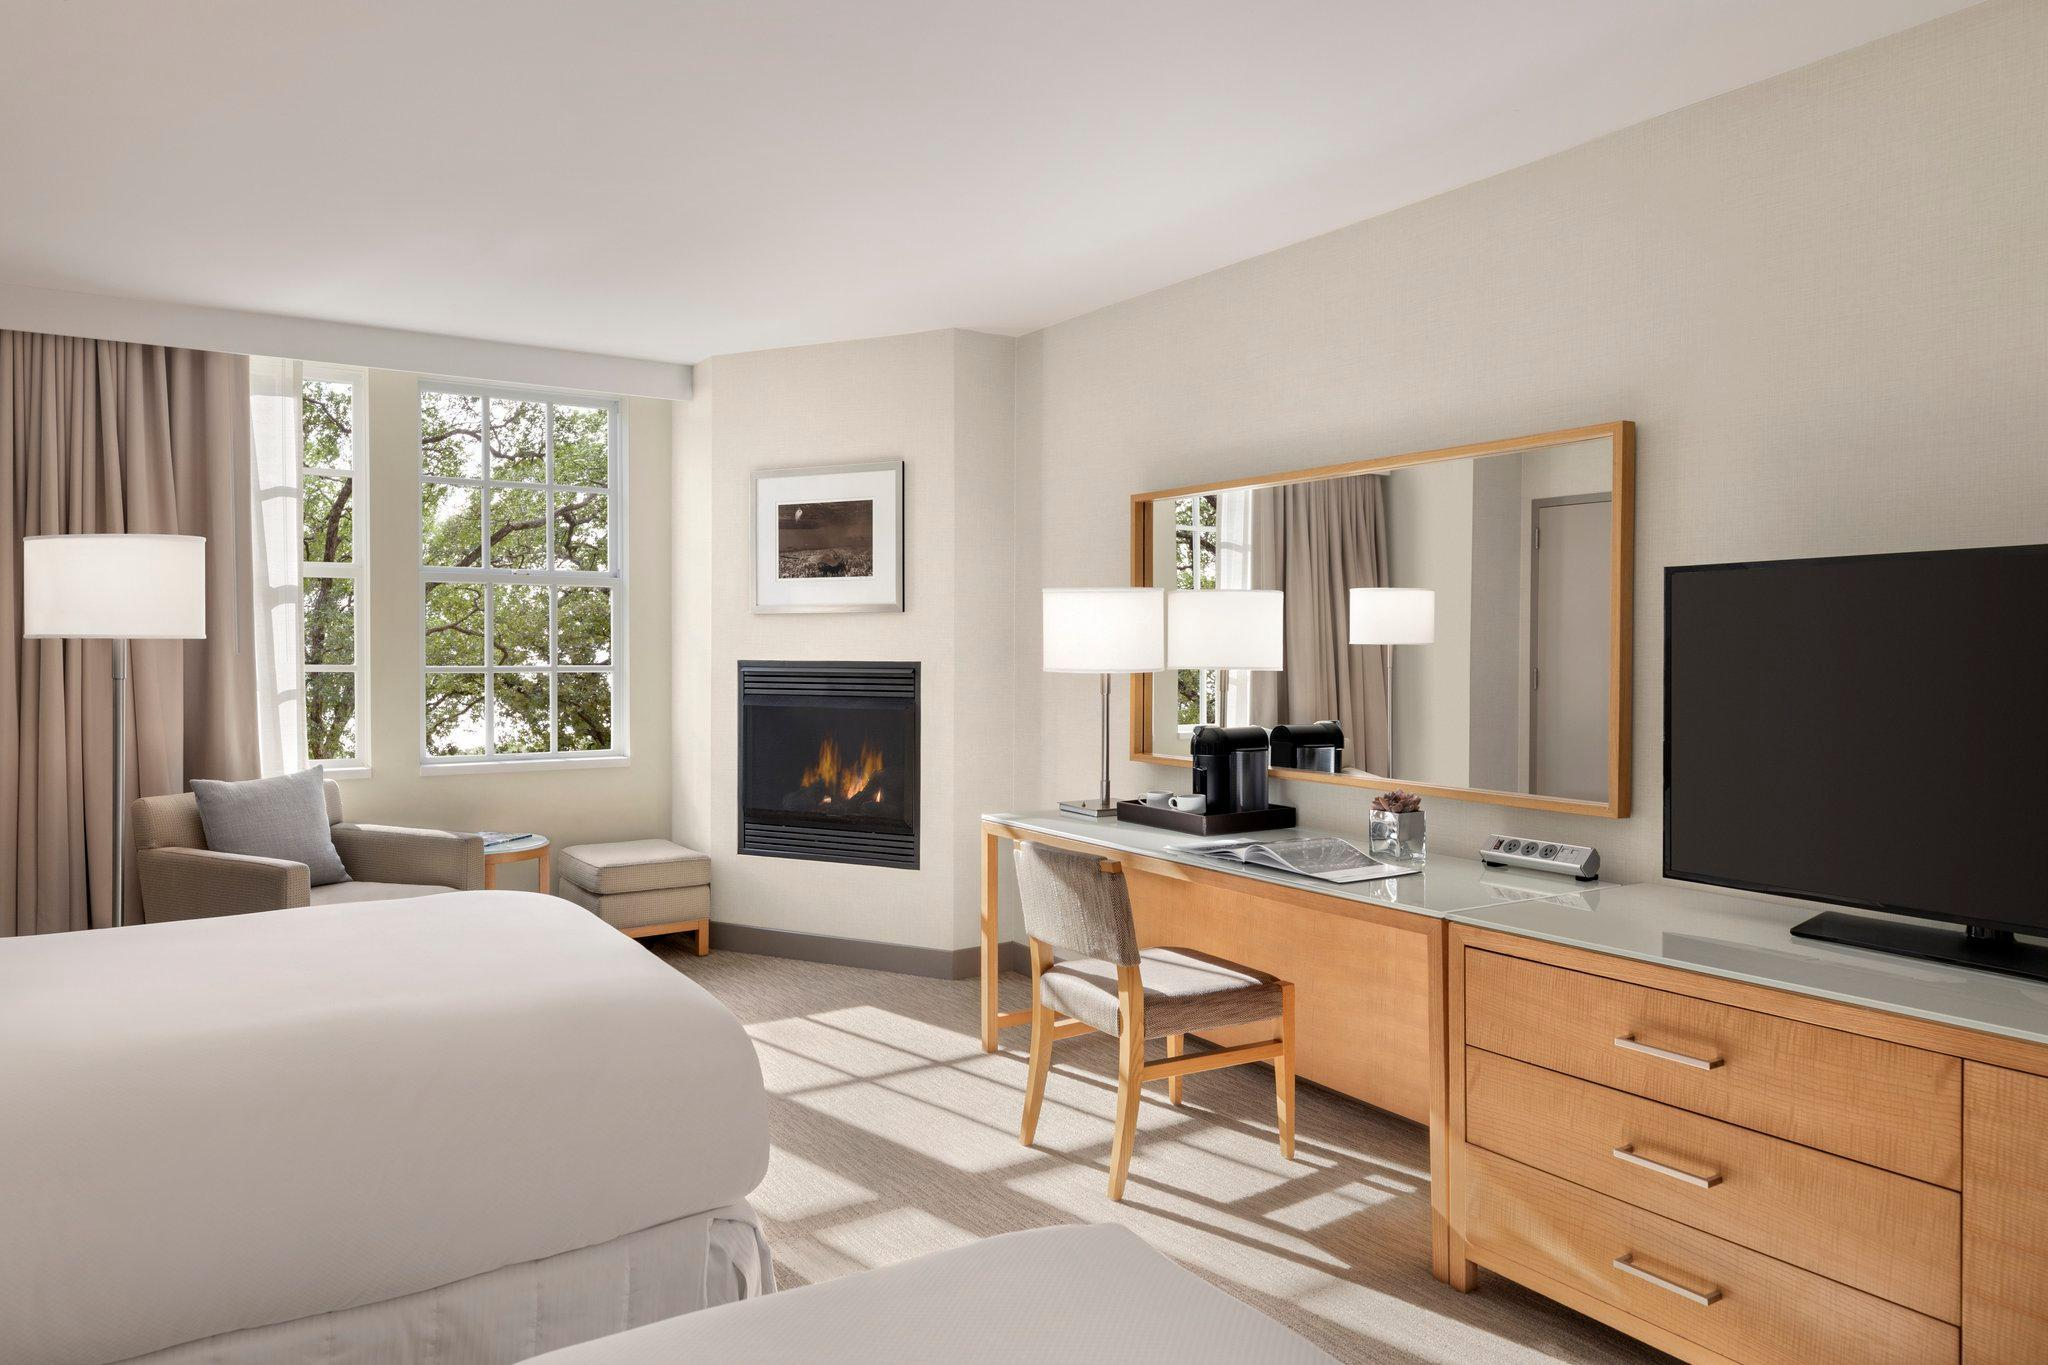 2 Double Beds With Fireplace